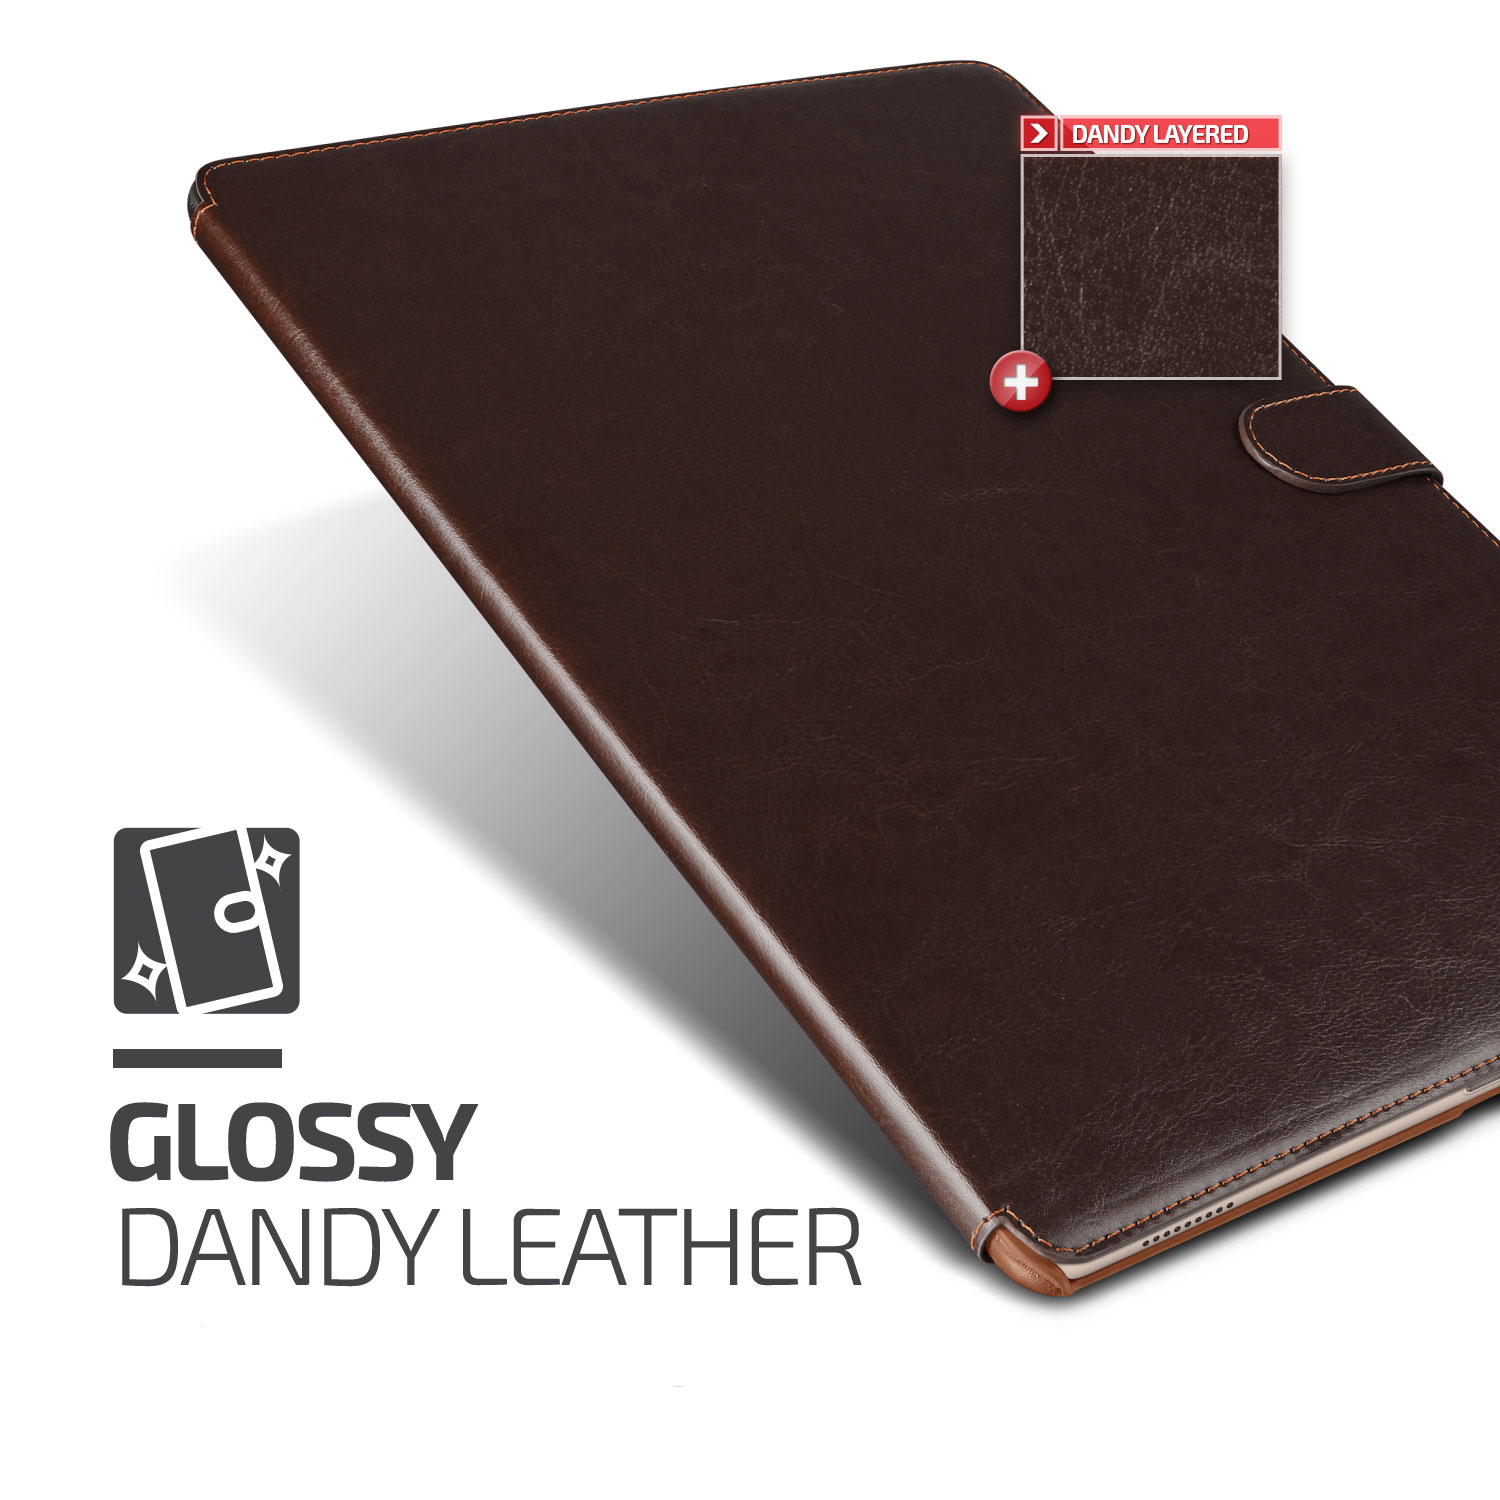 Verus Dandy Leather-Style iPad Pro Case - Dark Brown